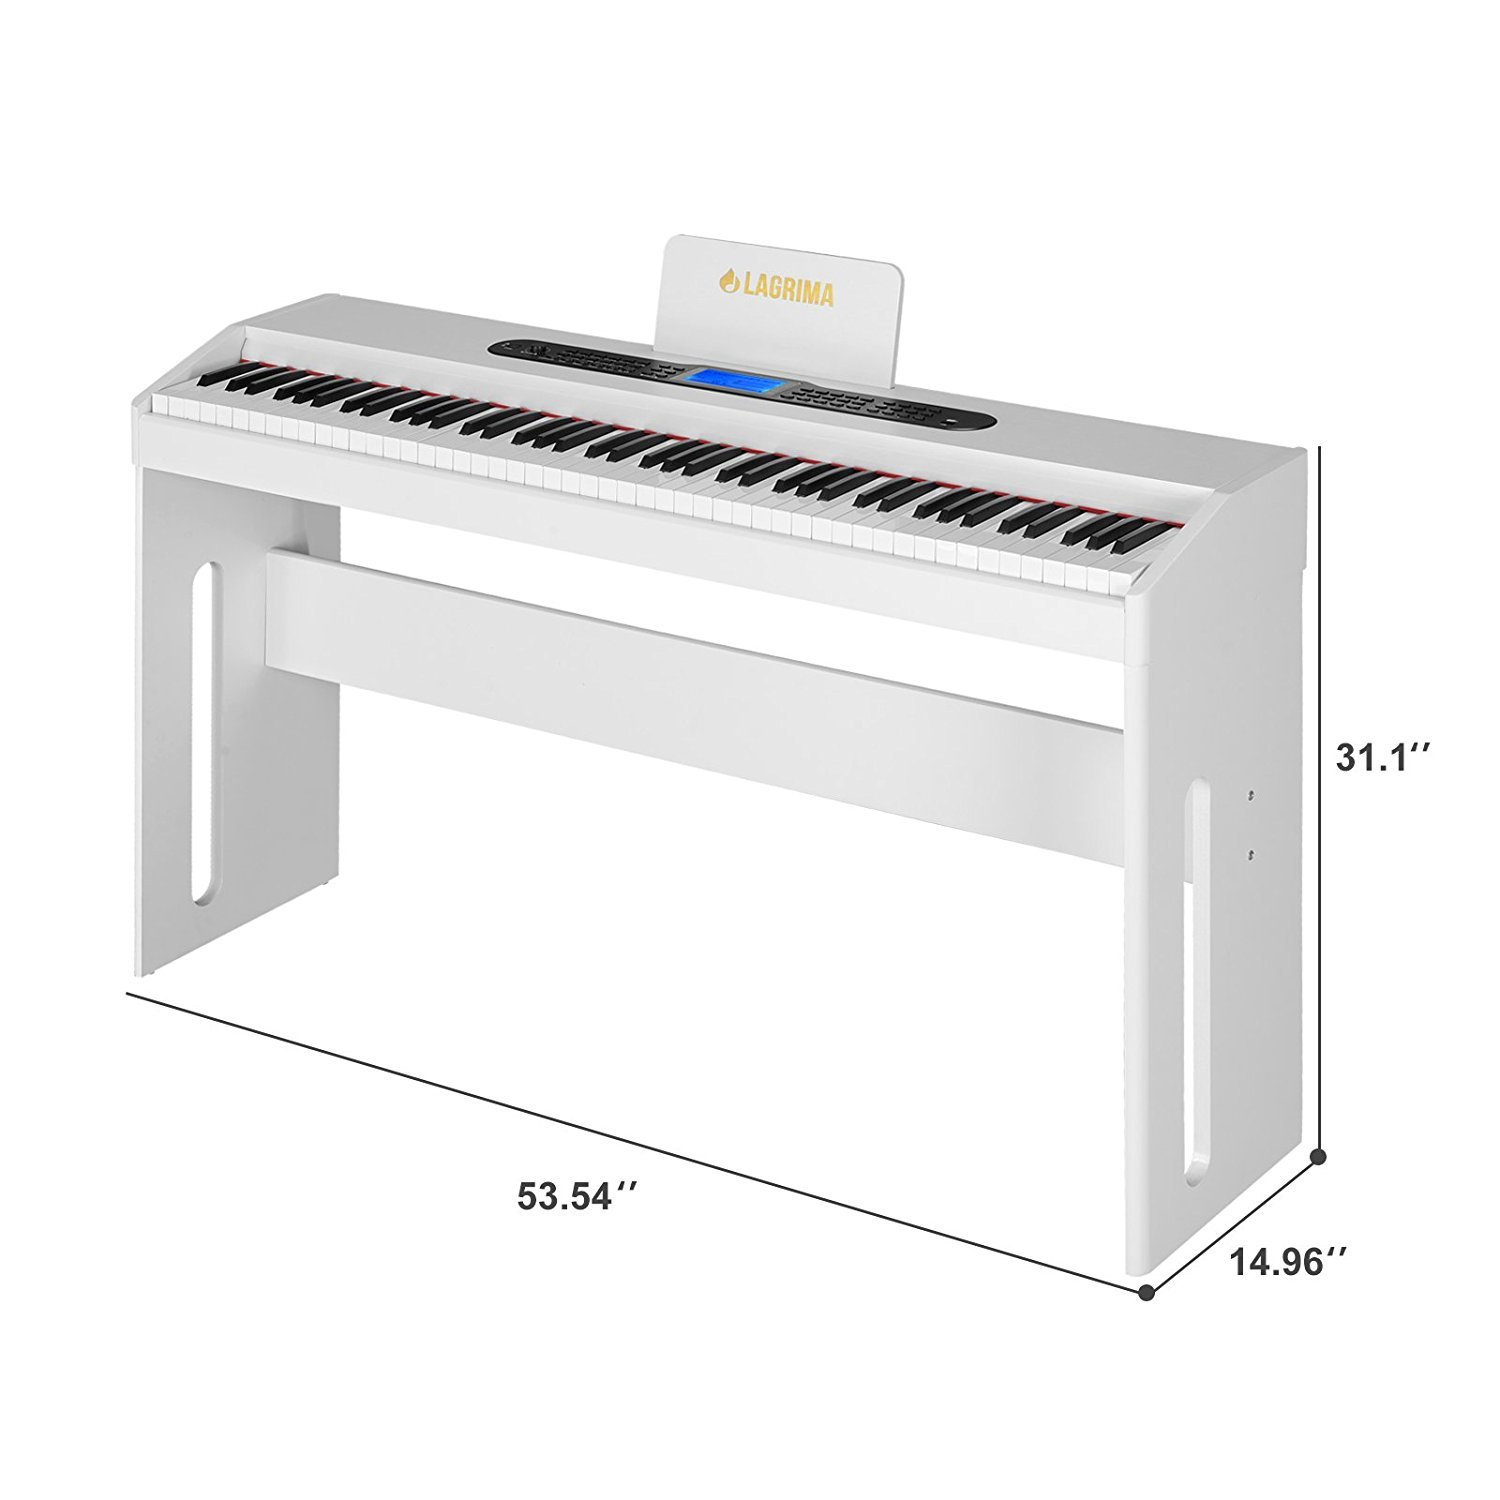 LAGRIMA White Digital Piano, 88 Keys Electric Piano Keyboard for Beginner/Adults W/Music Stand+Dust Cover+Power Adapter+1-Pedal Board+Instruction Book+Headphone Jack by LAGRIMA (Image #7)